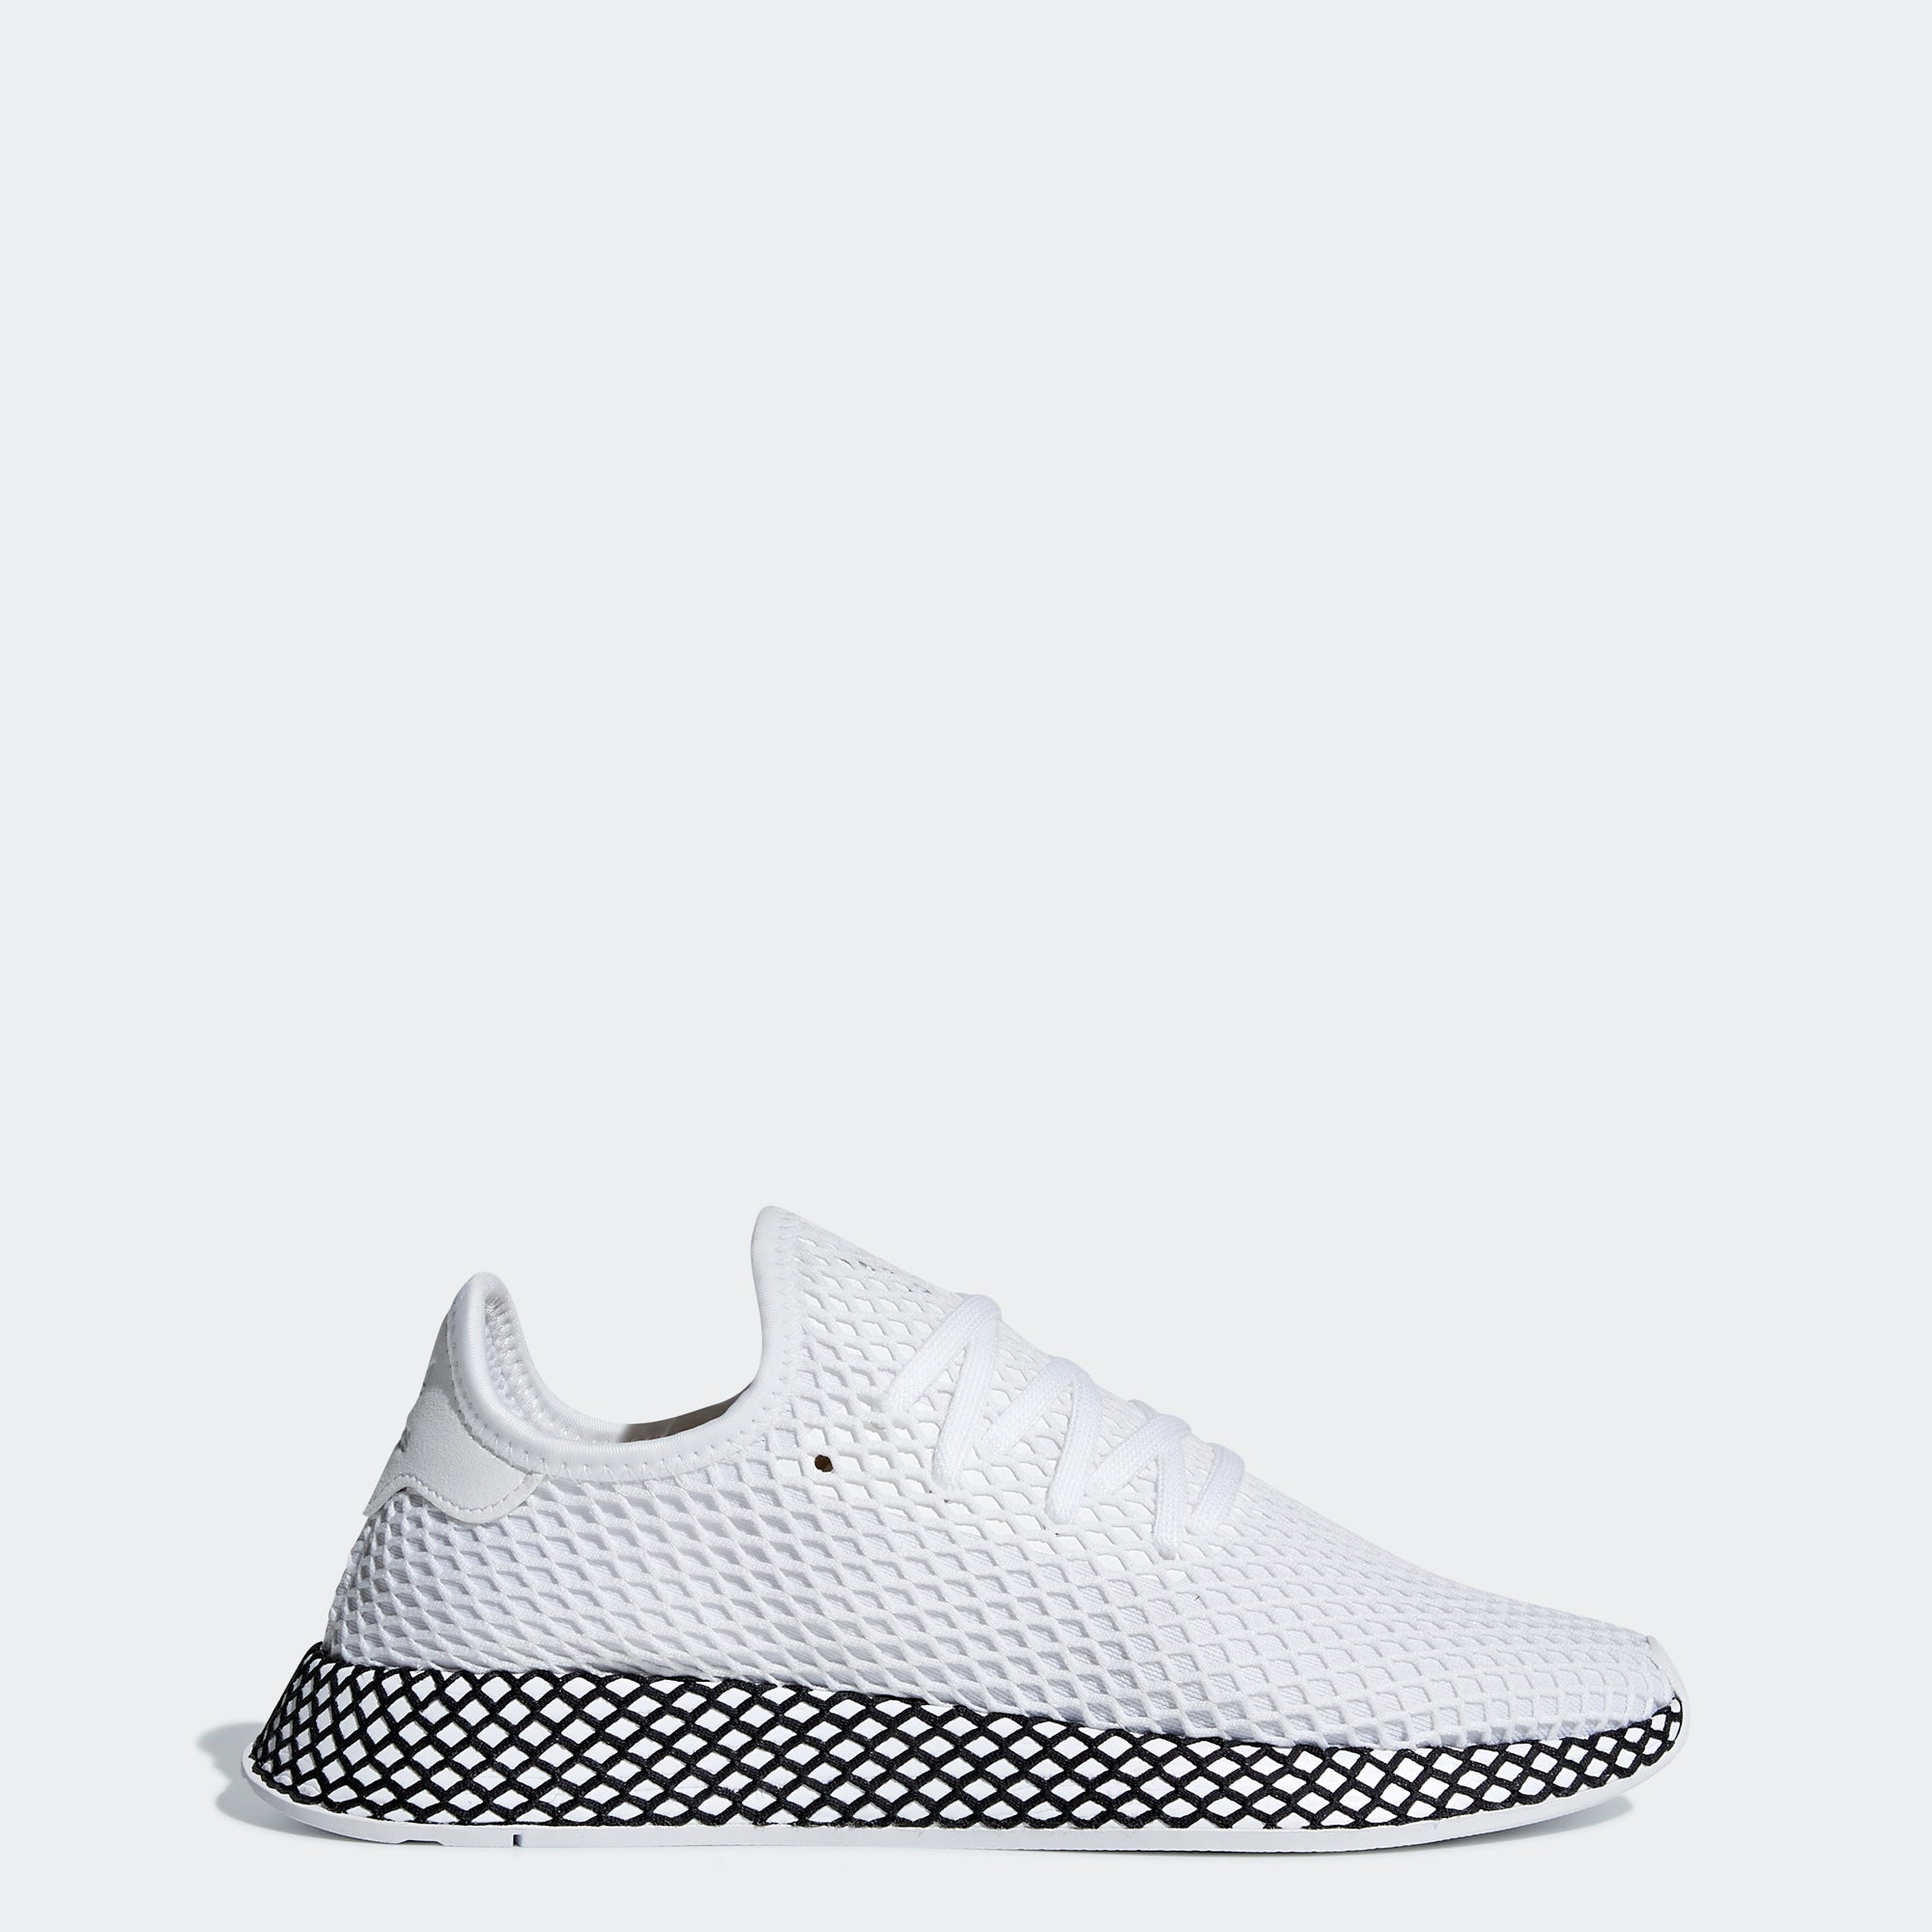 Men s adidas Originals Deerupt Runner Shoes Cloud White Core Black ebfadd62c